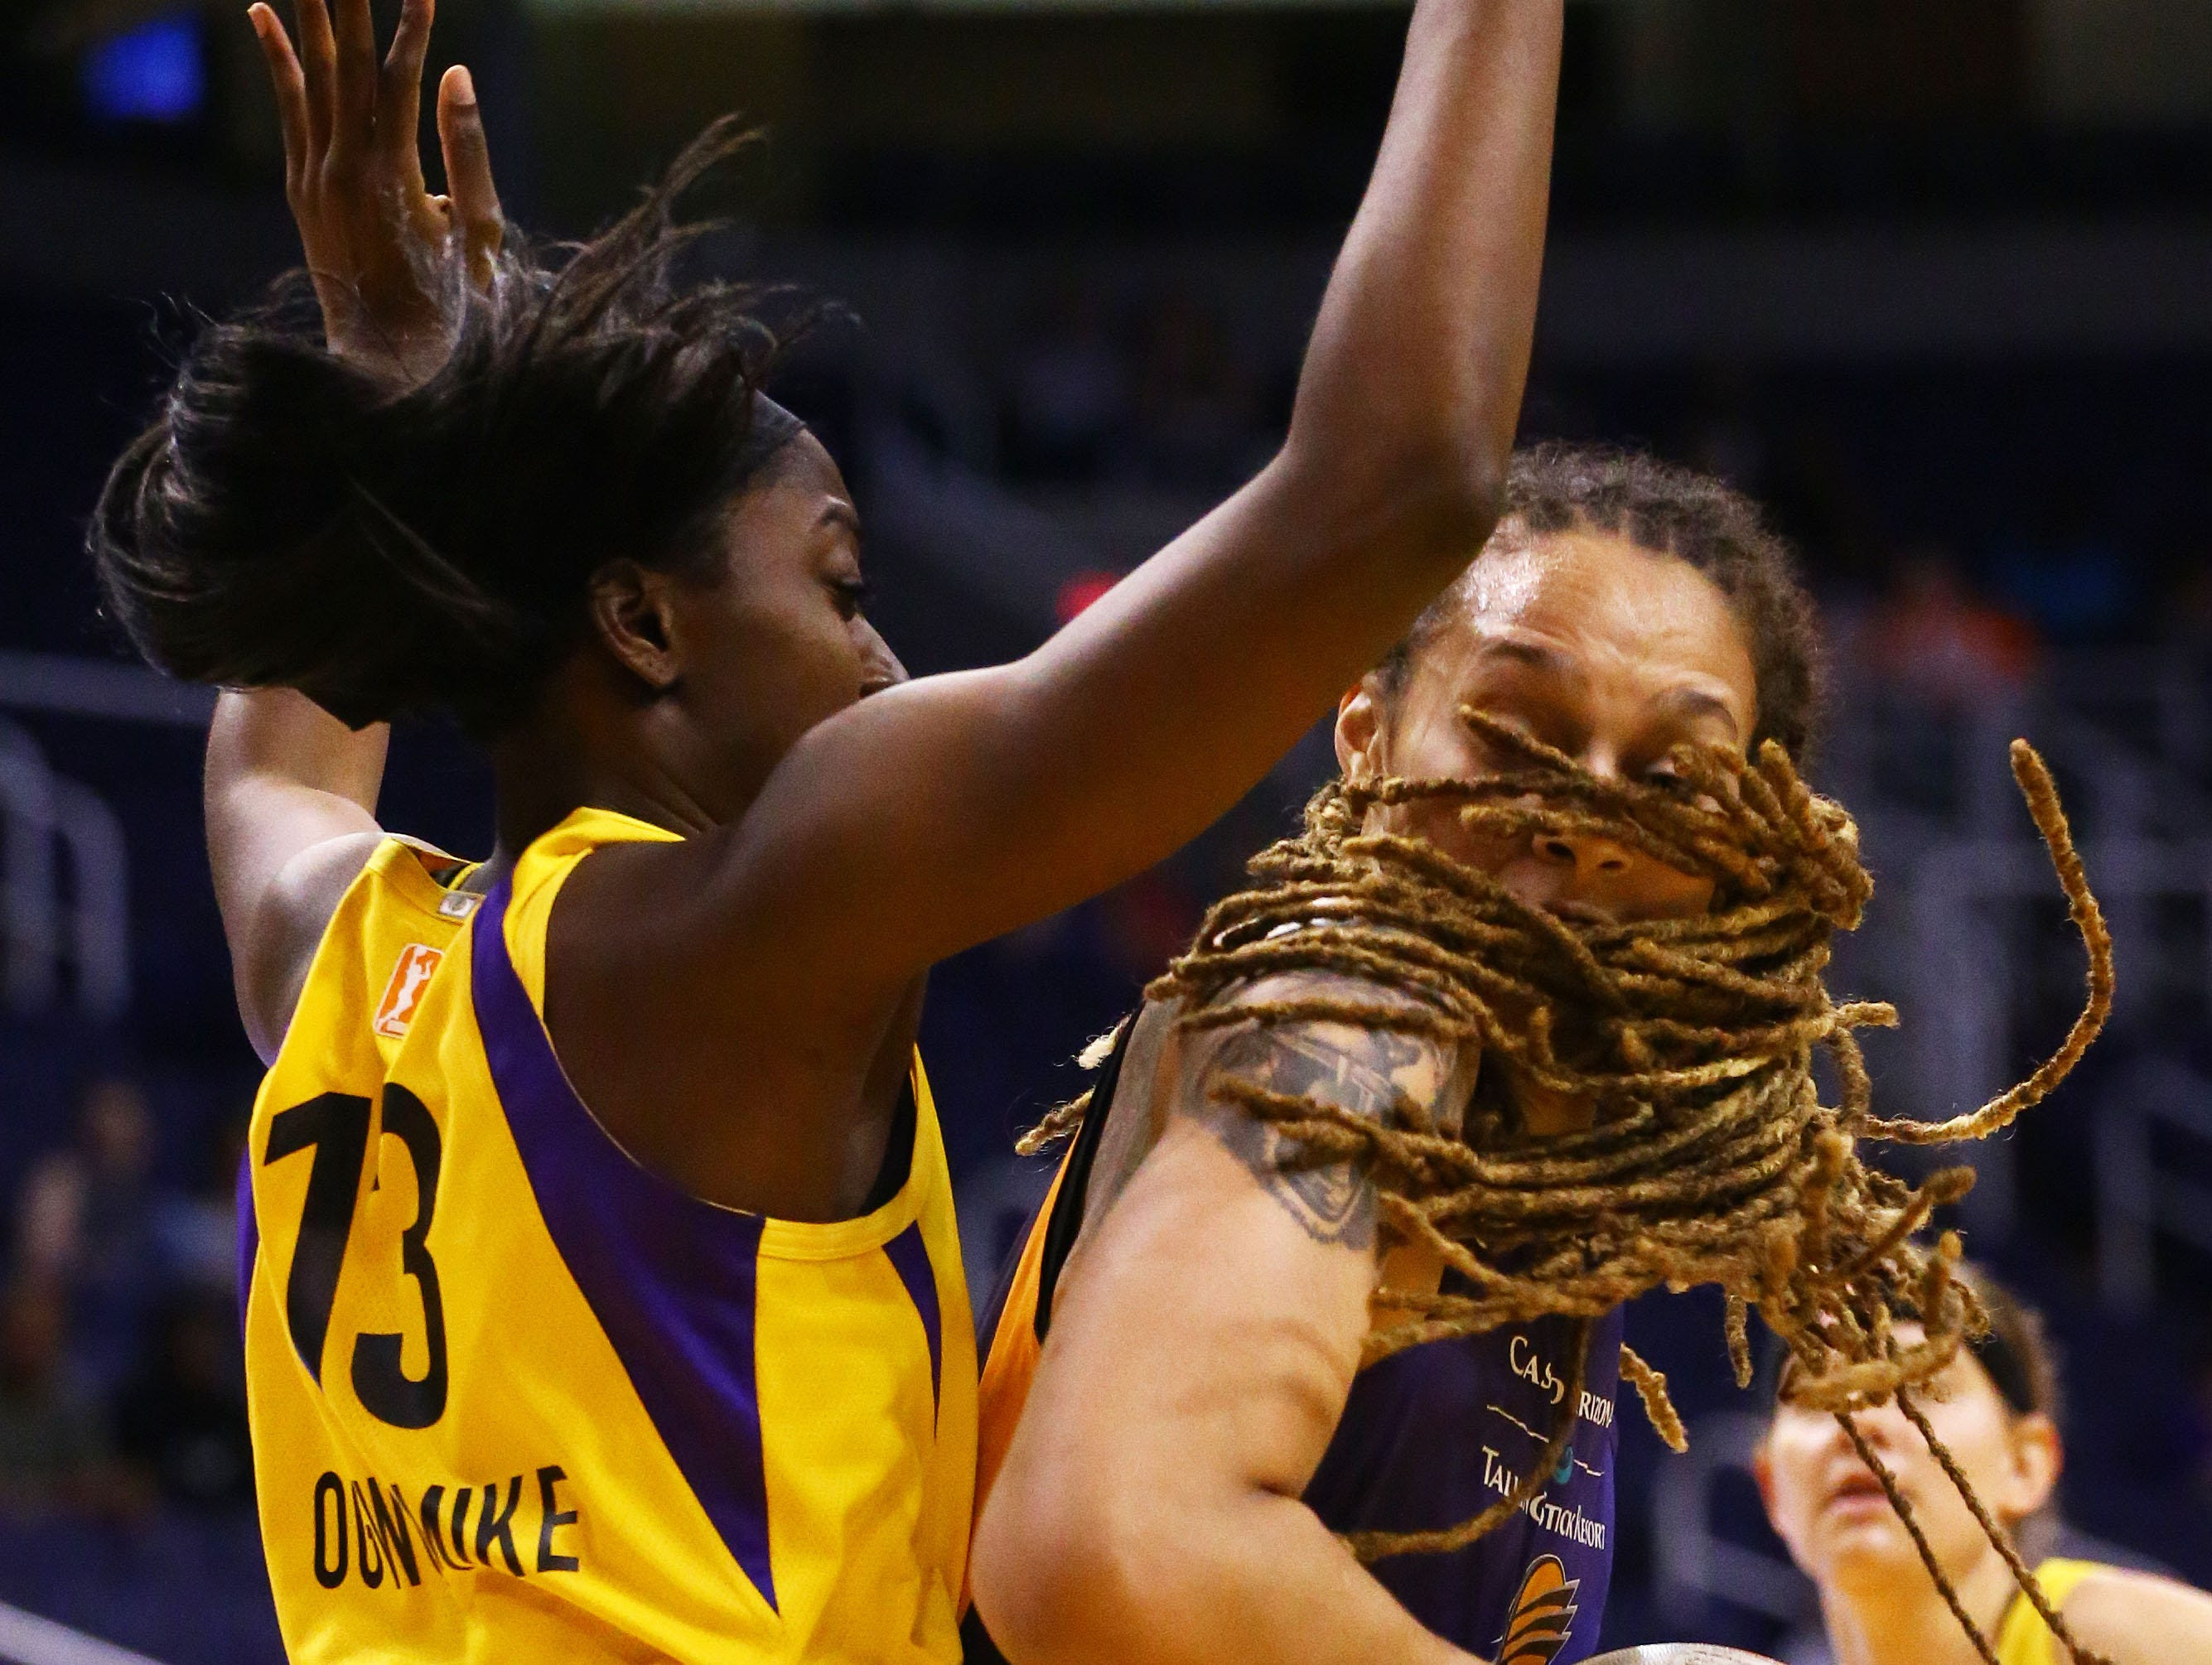 Phoenix Mercury center Brittney Griner is pressured by Los Angeles Sparks forward Chiney Ogwumike in the first half during a preseason game on May 11, 2019 in Phoenix, Ariz.